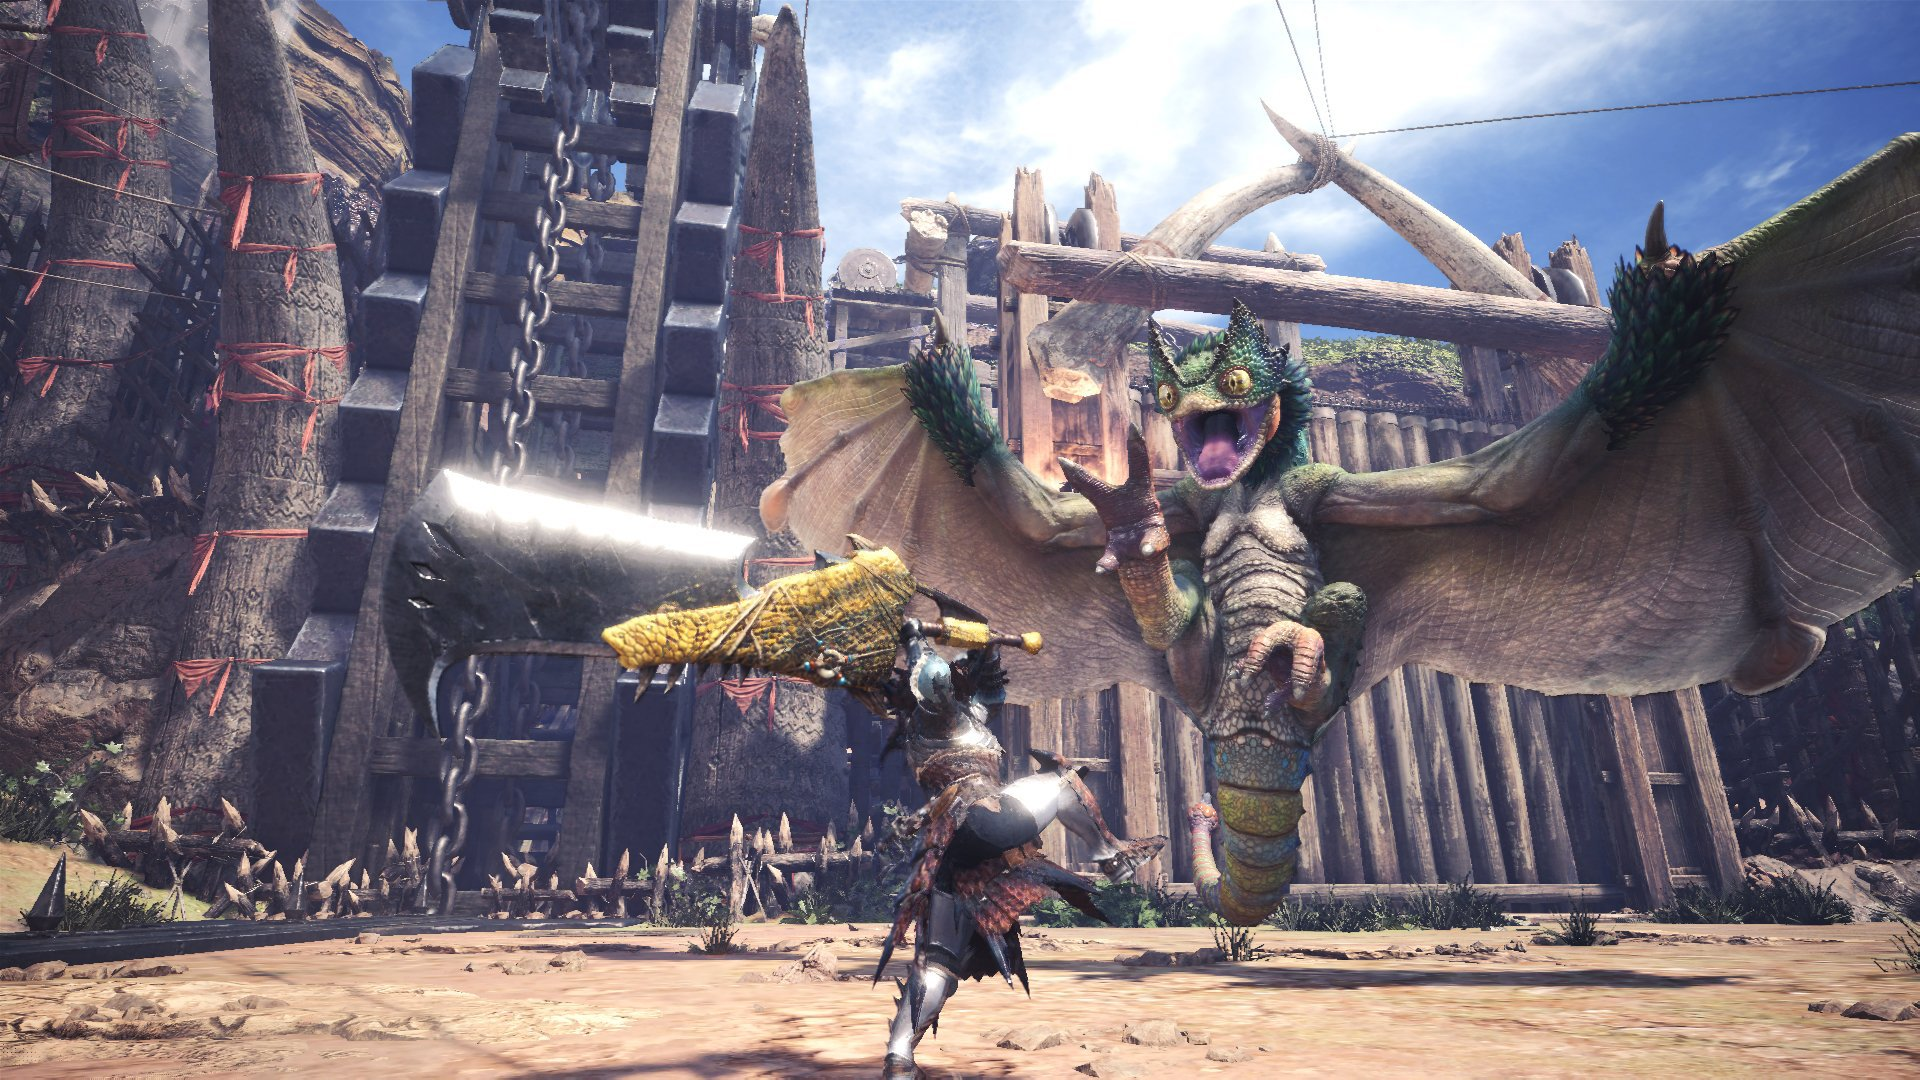 monster_hunter_world_sqauds_arenas_etc (3)